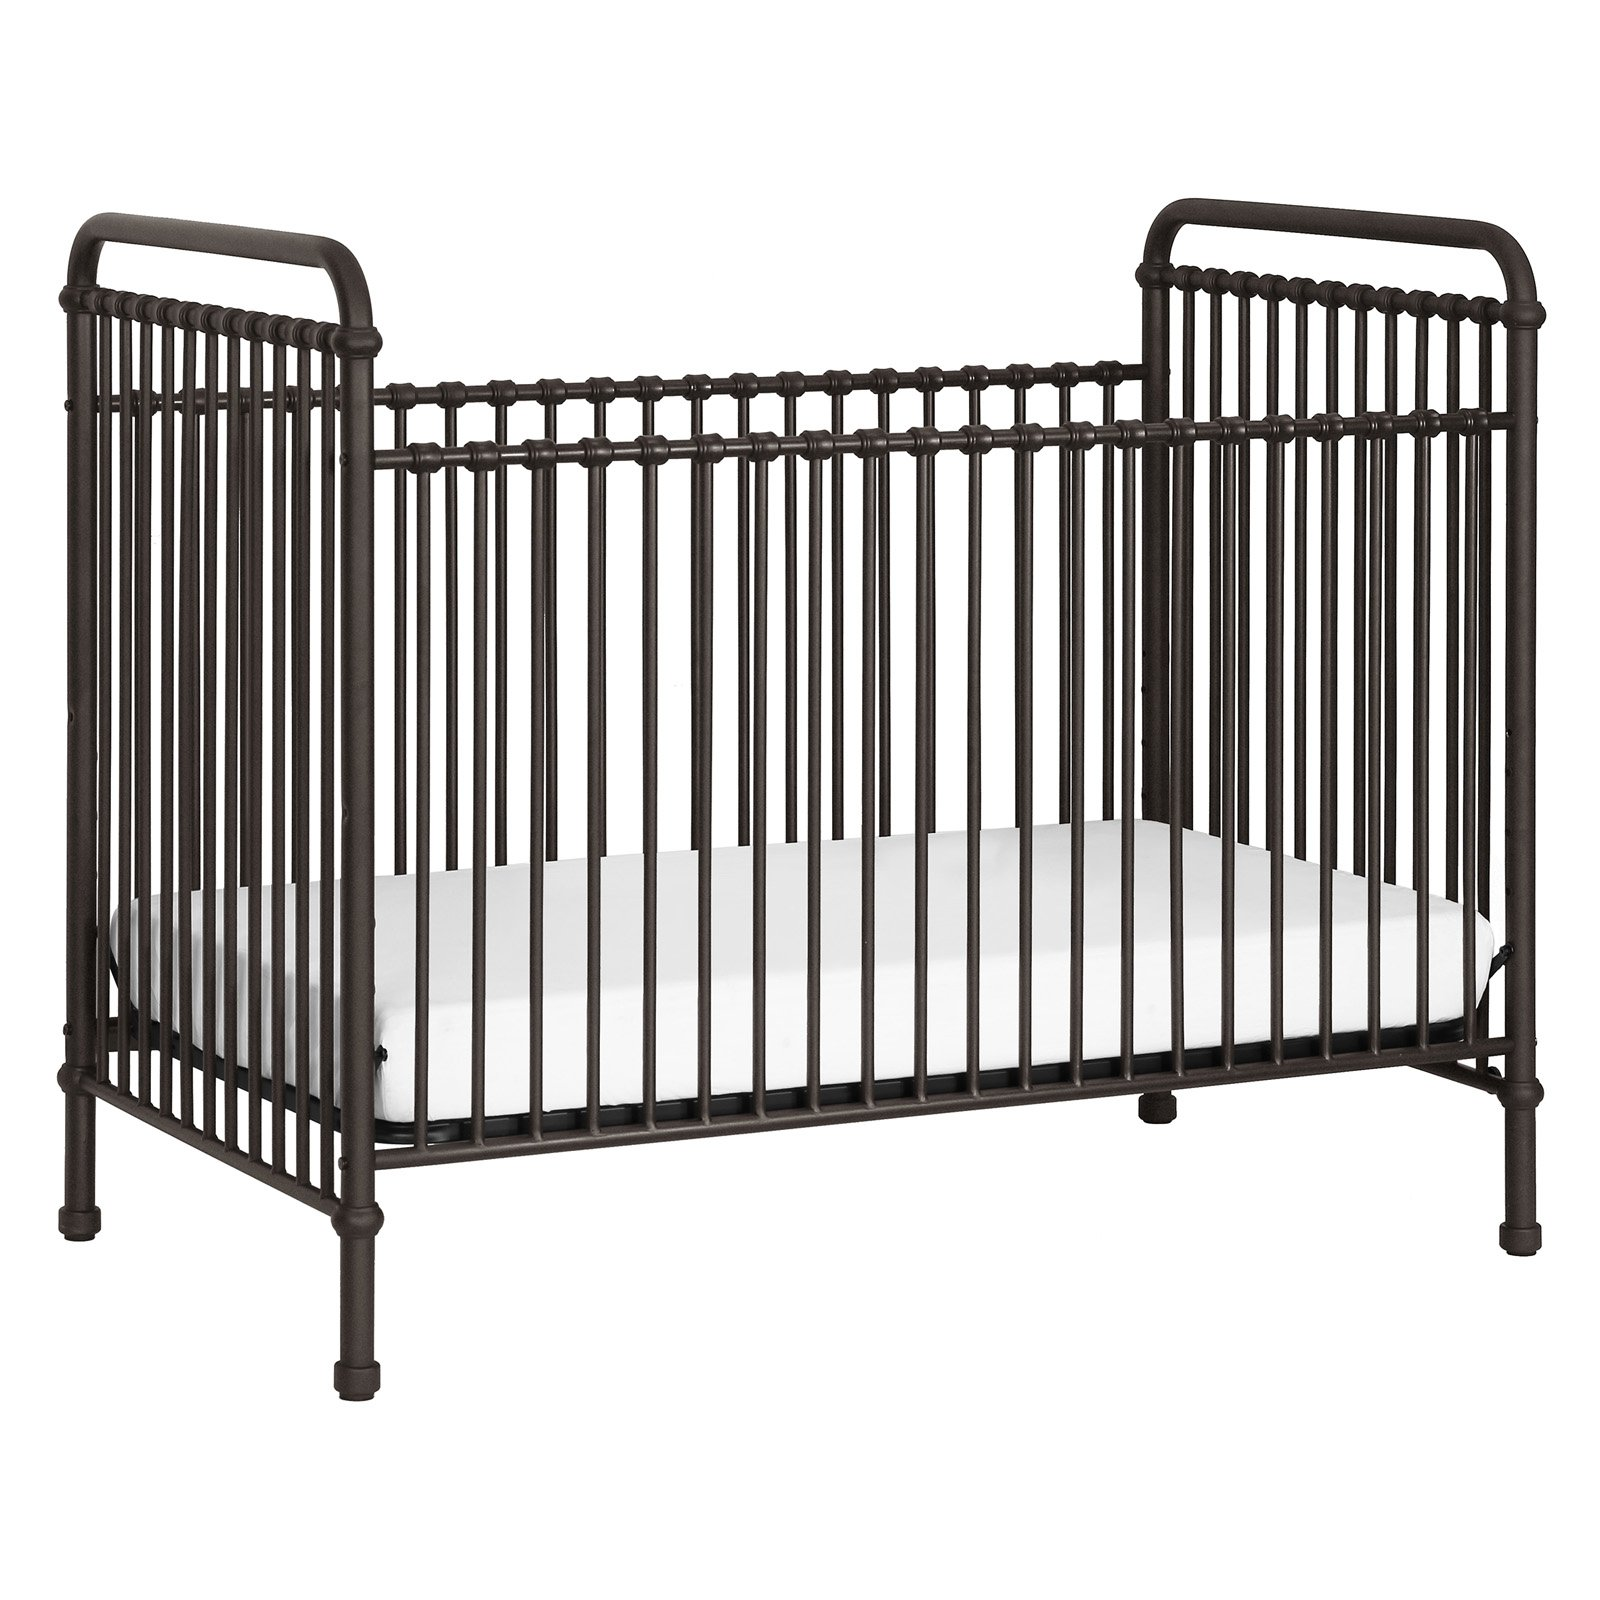 convertible baby cribs. Million Dollar Baby Classic Abigail 3-in-1 Convertible Iron Crib - Walmart.com Cribs P